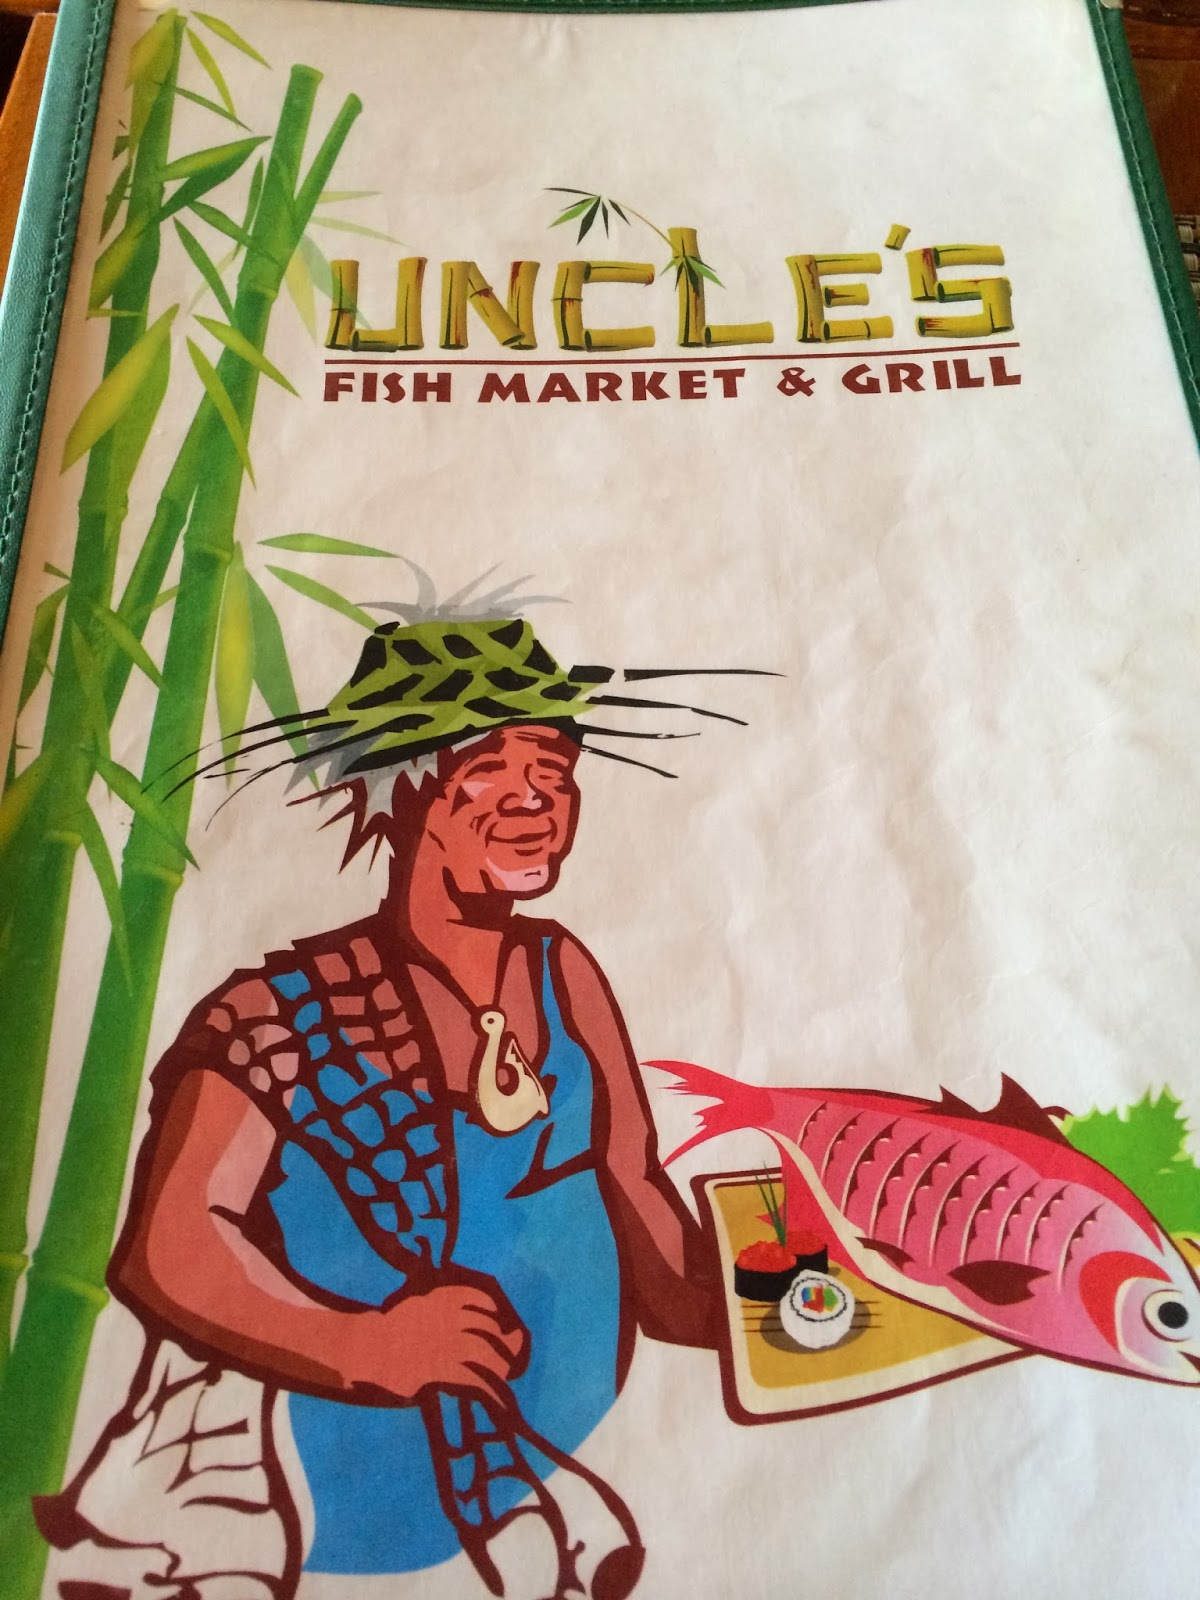 Taste of hawaii uncle 39 s fish market and grill for Uncle s fish market grill